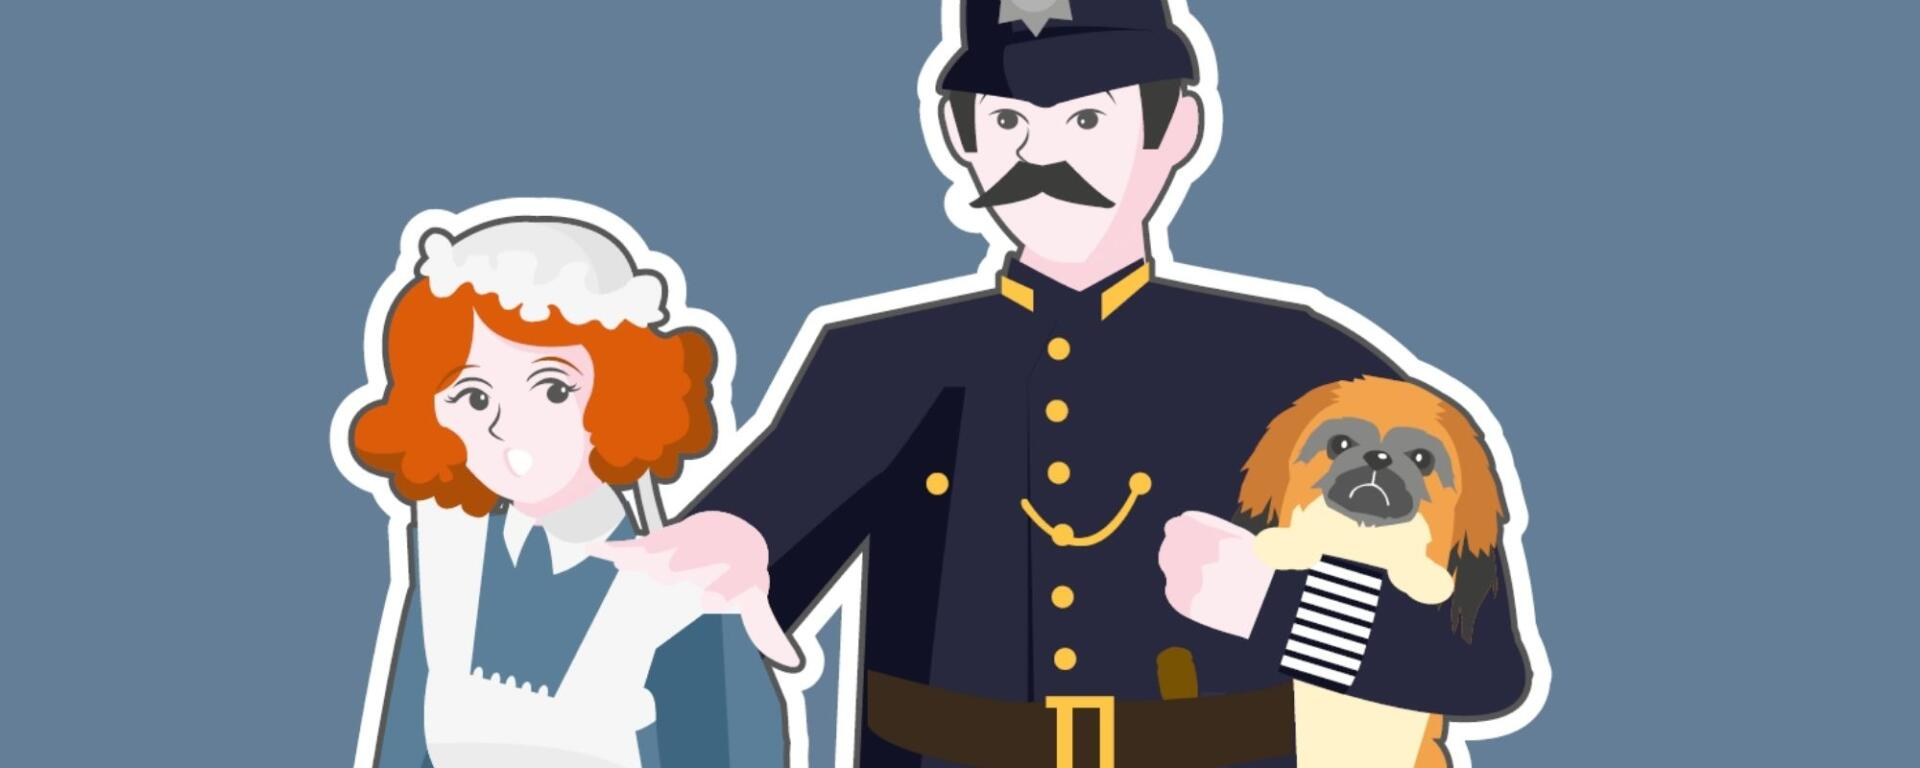 Lizzie The Maid And Victorian Policeman Need Your Help To Find The Missing Keys